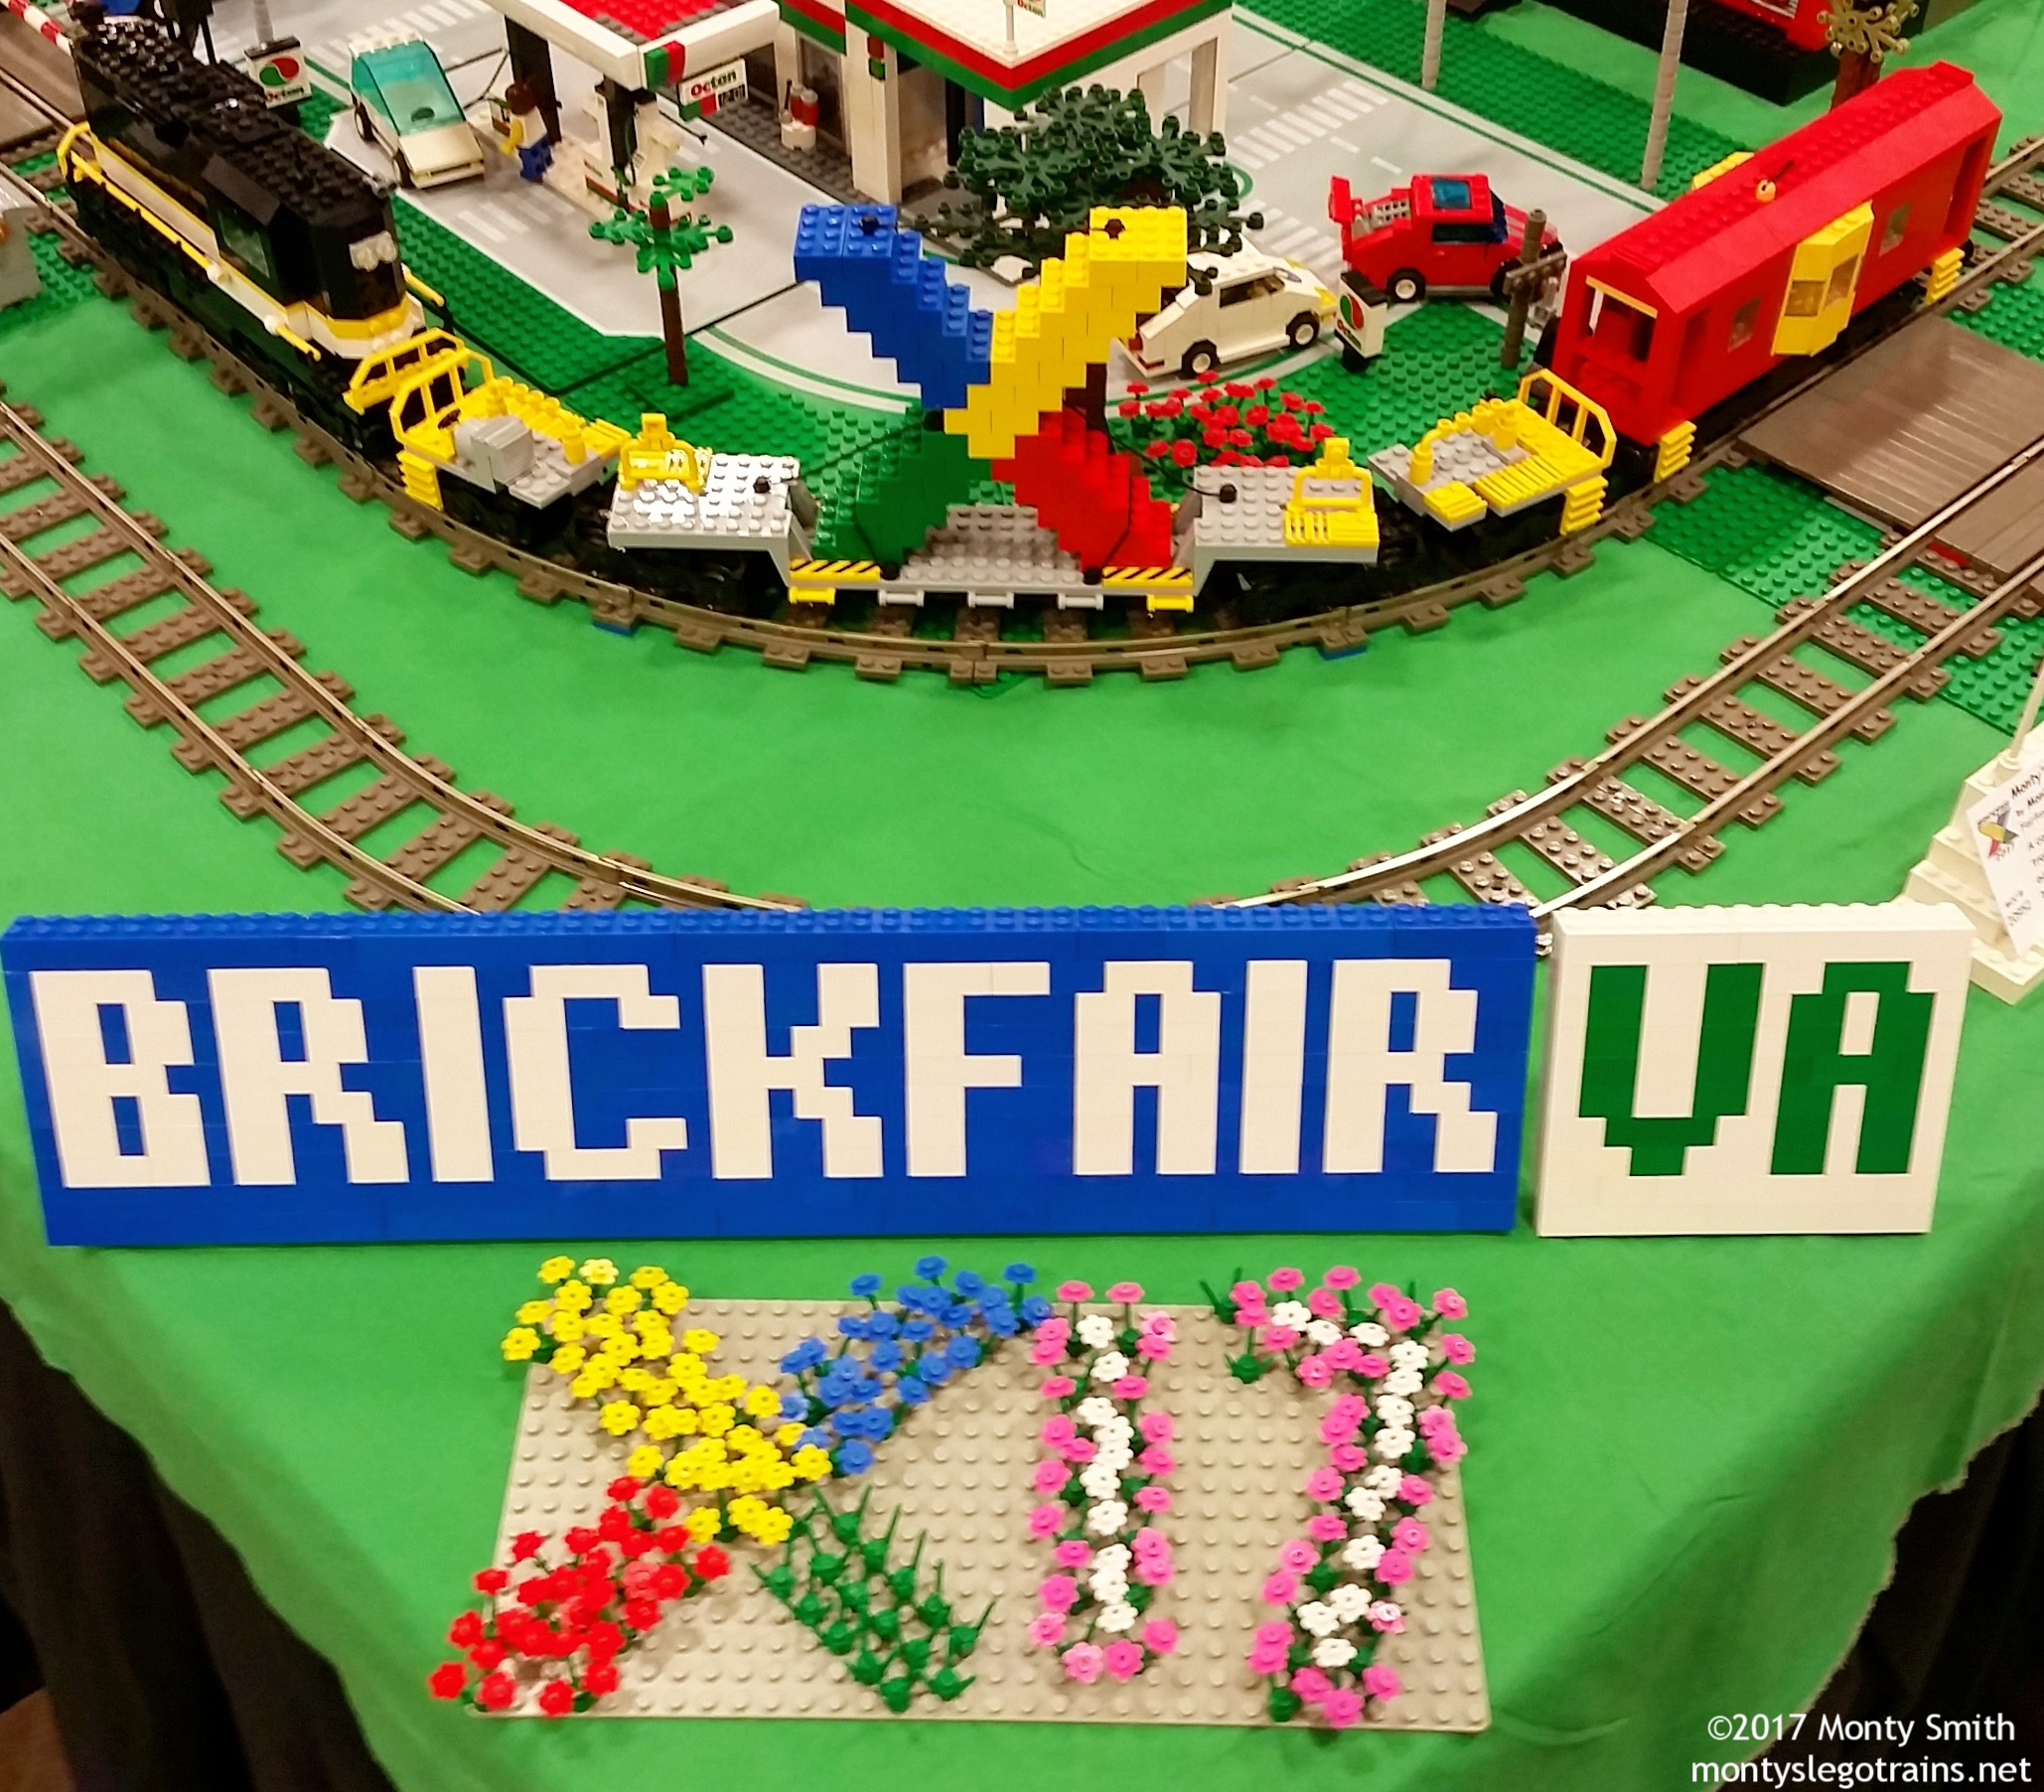 """The theme for this year's BrickFair was """"X"""" or """"10,"""" for the 10th anniversary of the event. Fittingly, I built a 10-axle flatcar carrying a large """"X"""" in the BrickFair color scheme, shown here with my BrickFair VA sign."""